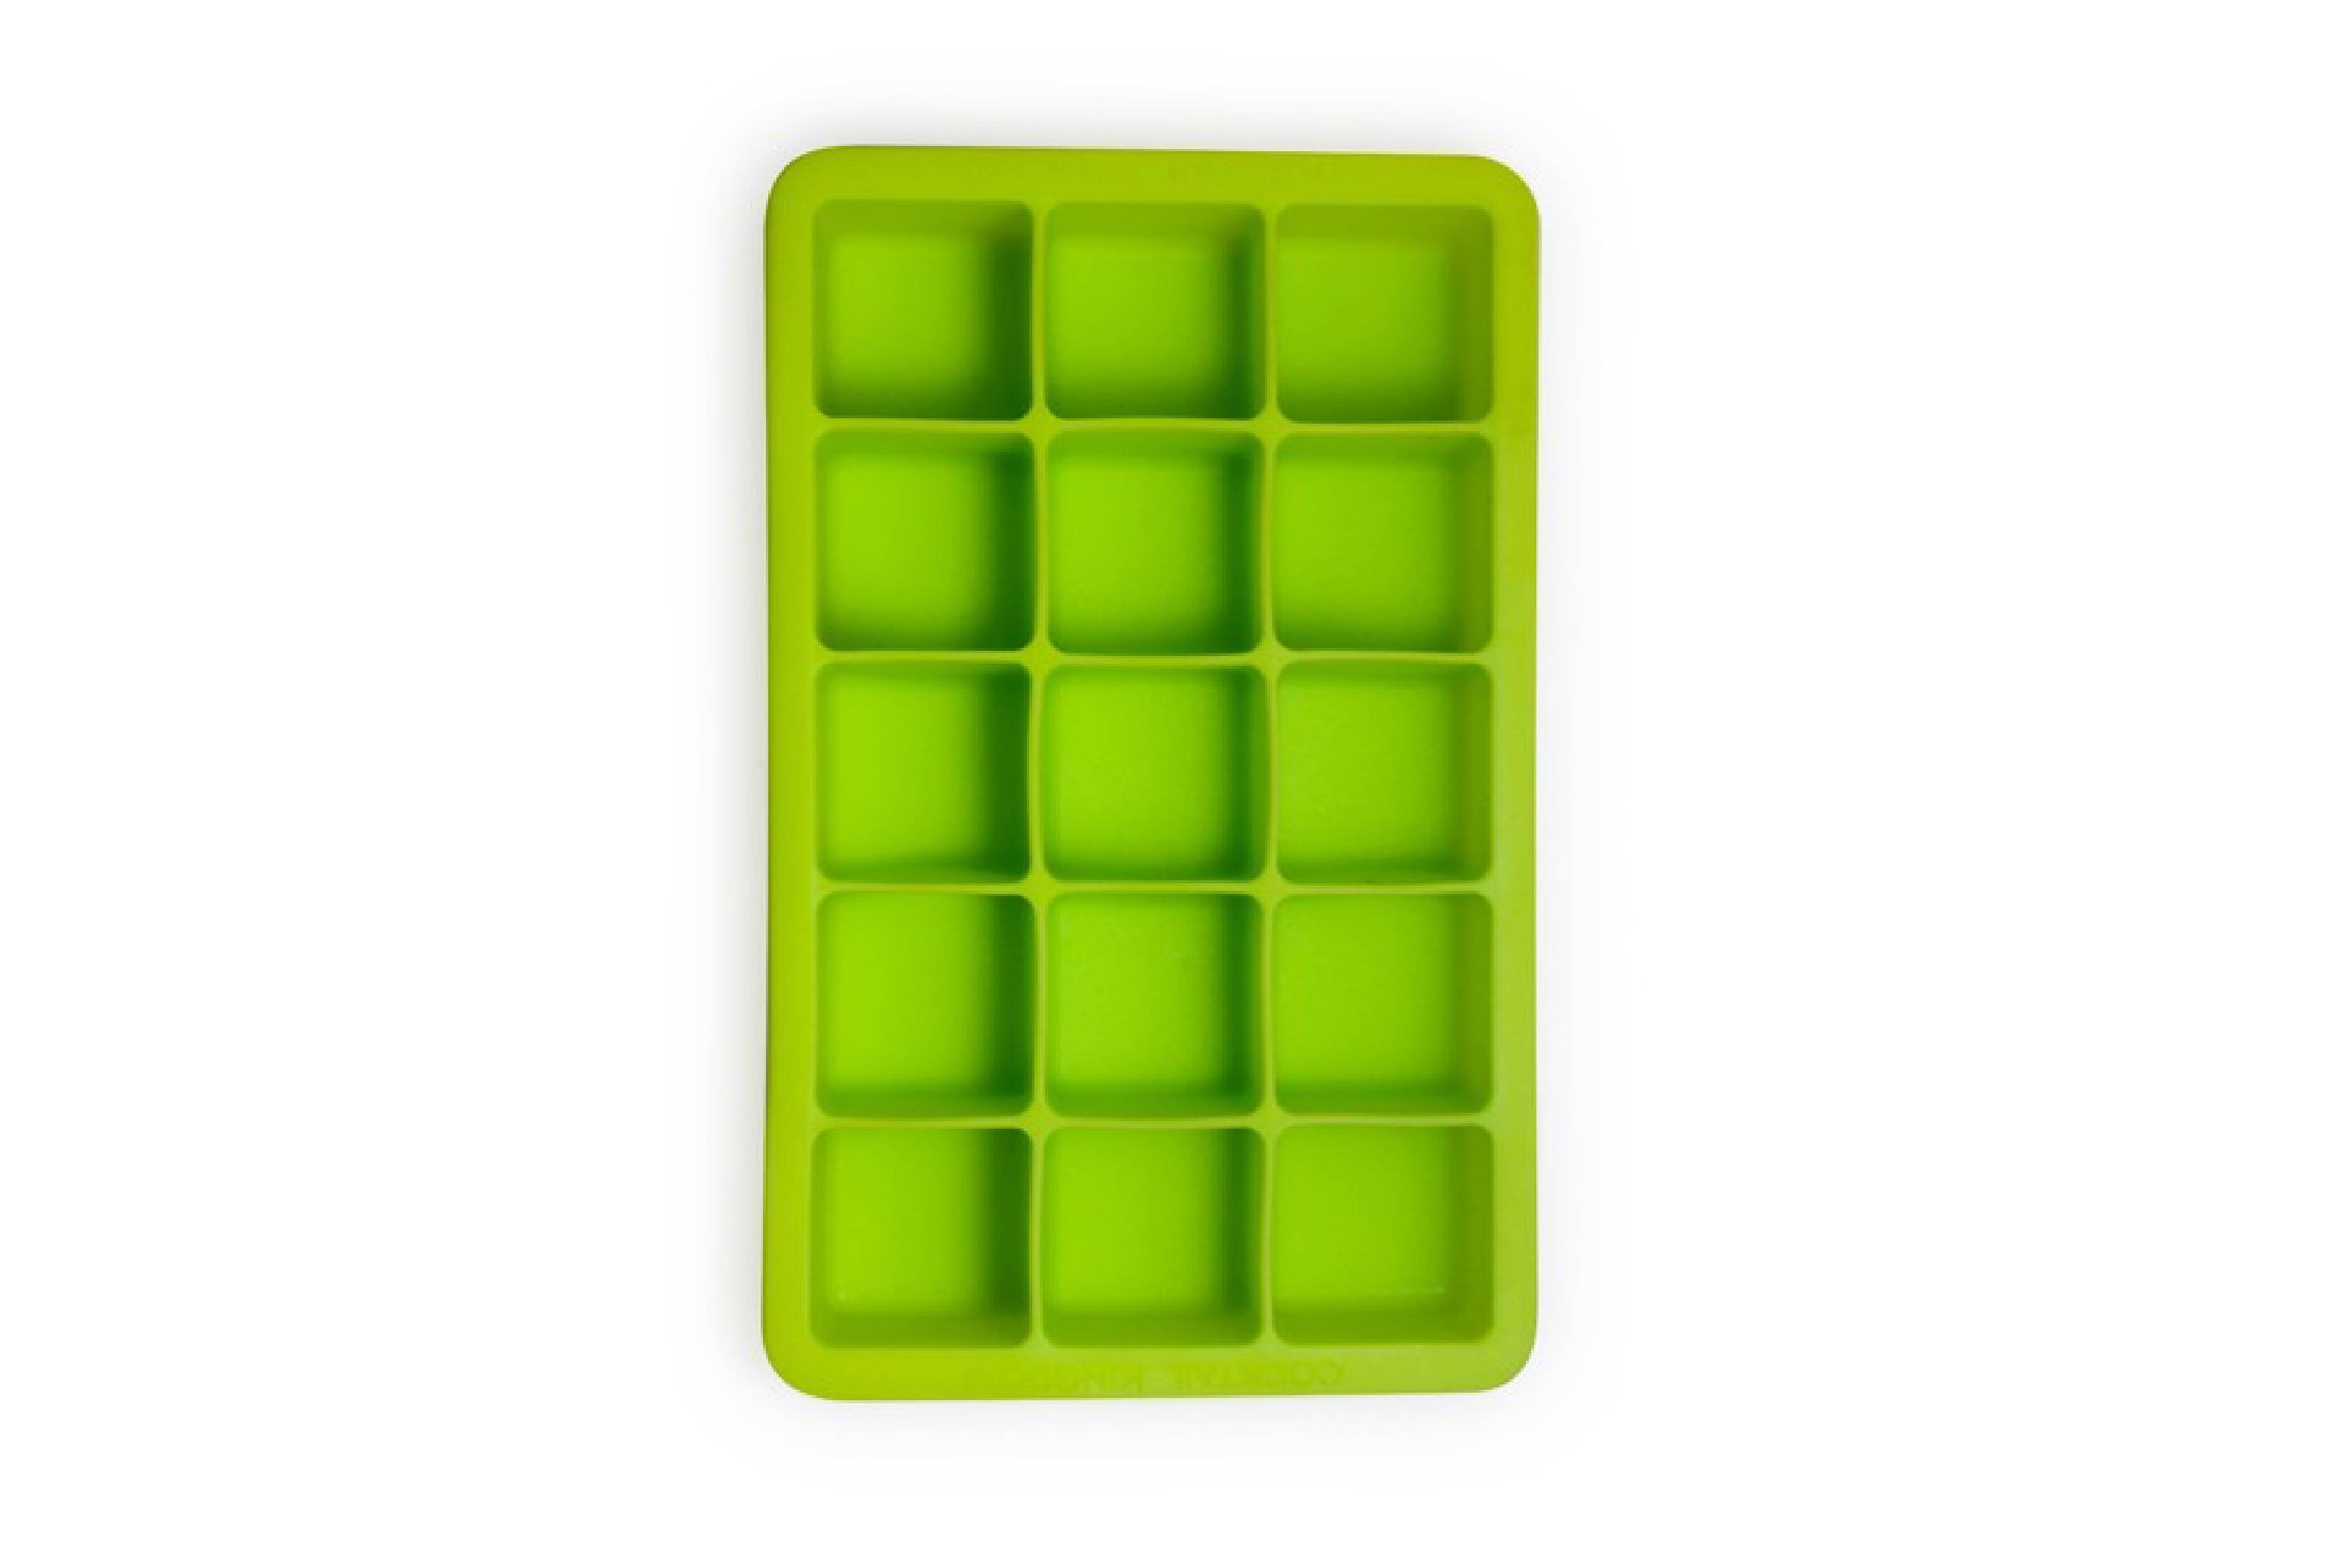 Green ice cube tray, rubber mold, ice cube design, cocktail quality premium, bartender ice, square, BPA free, silicon, freeze, best, mixologist, professional bartending equipment,  a full spectrum of professional and custom barware, artisan bitters and syrups, Cocktail Kingdom, discerning bartender.